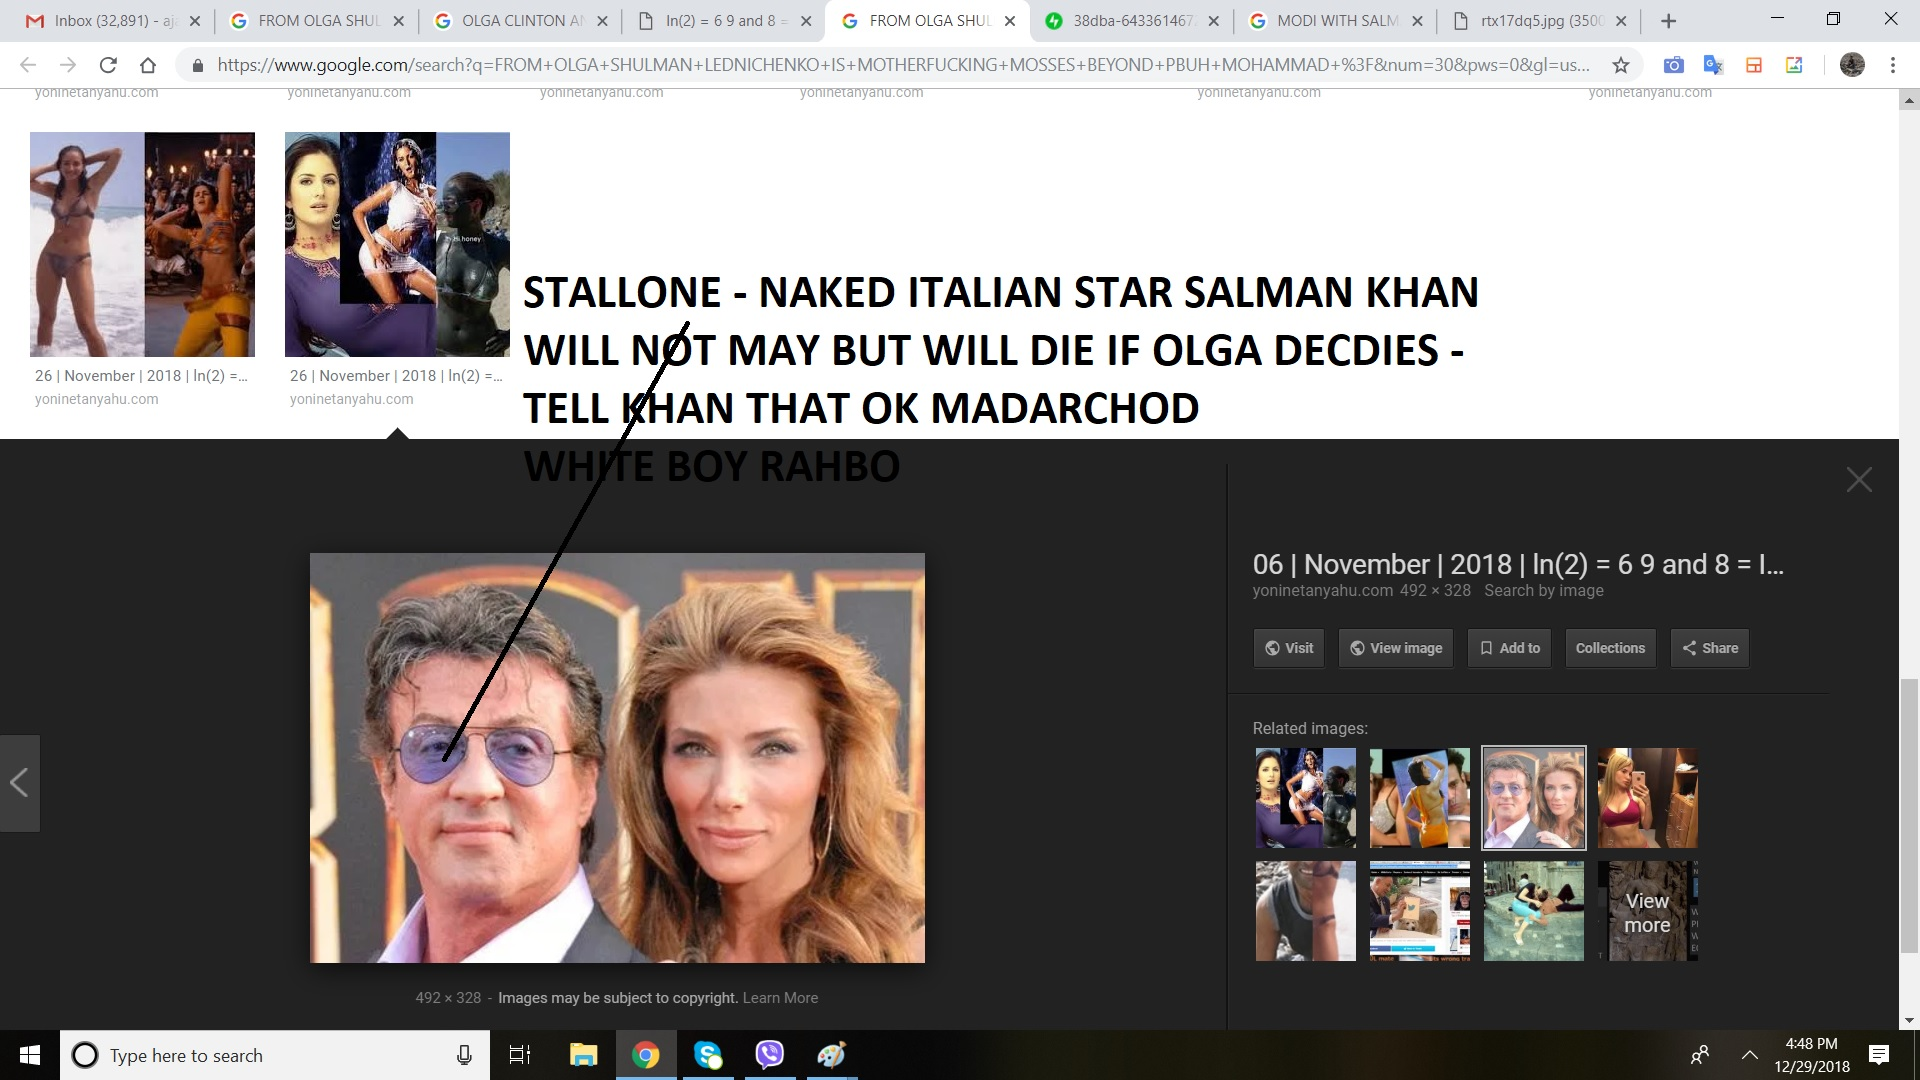 STALLONE - NAKED ITALIAN STAR SALMAN KHAN WILL NOT MAY BUT WILL DIE IF OLGA DECDIES - TELL KHAN THAT OK MADARCHOD